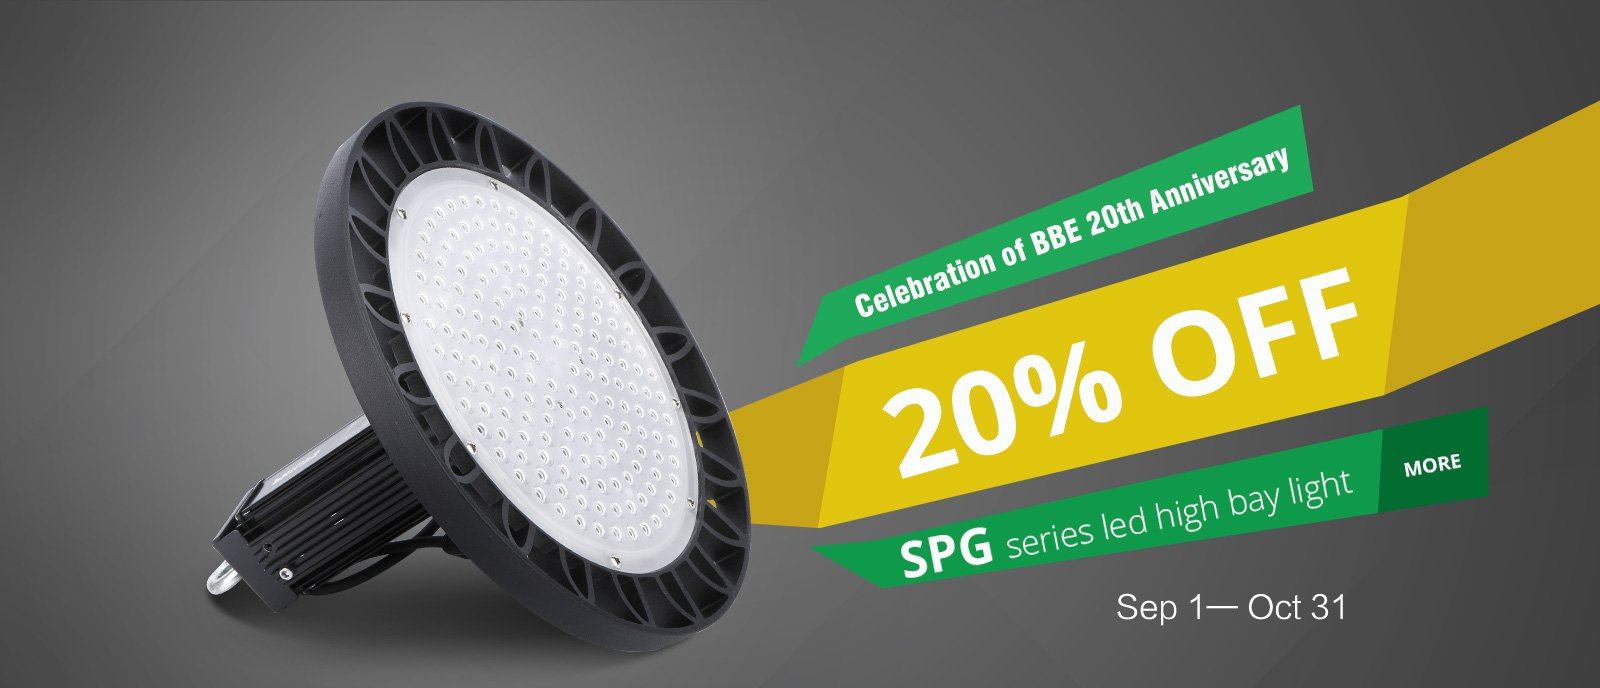 20% off spg high bay light